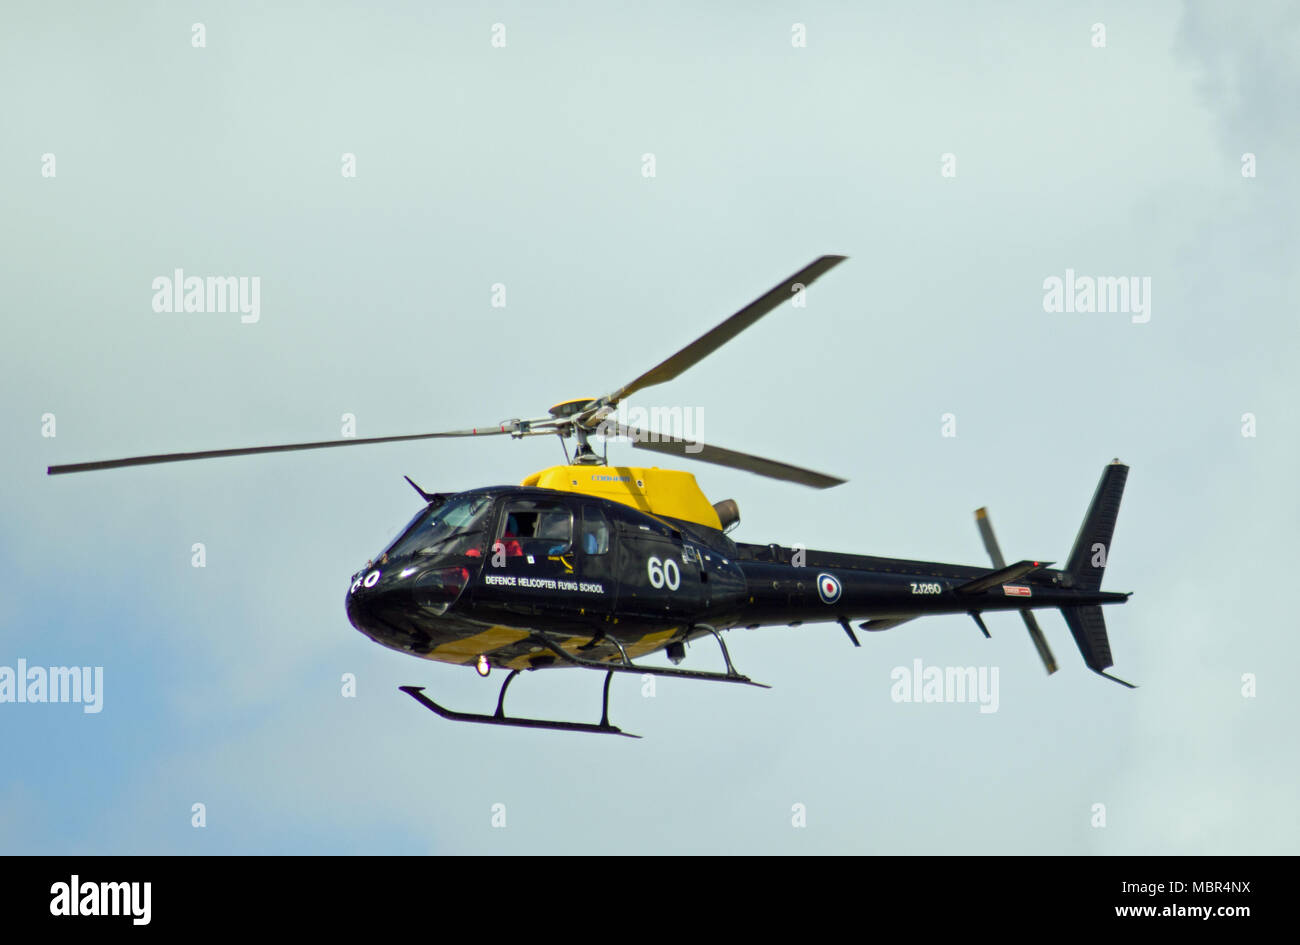 Police helicopter at Wales National Airshow 2017 - Stock Image